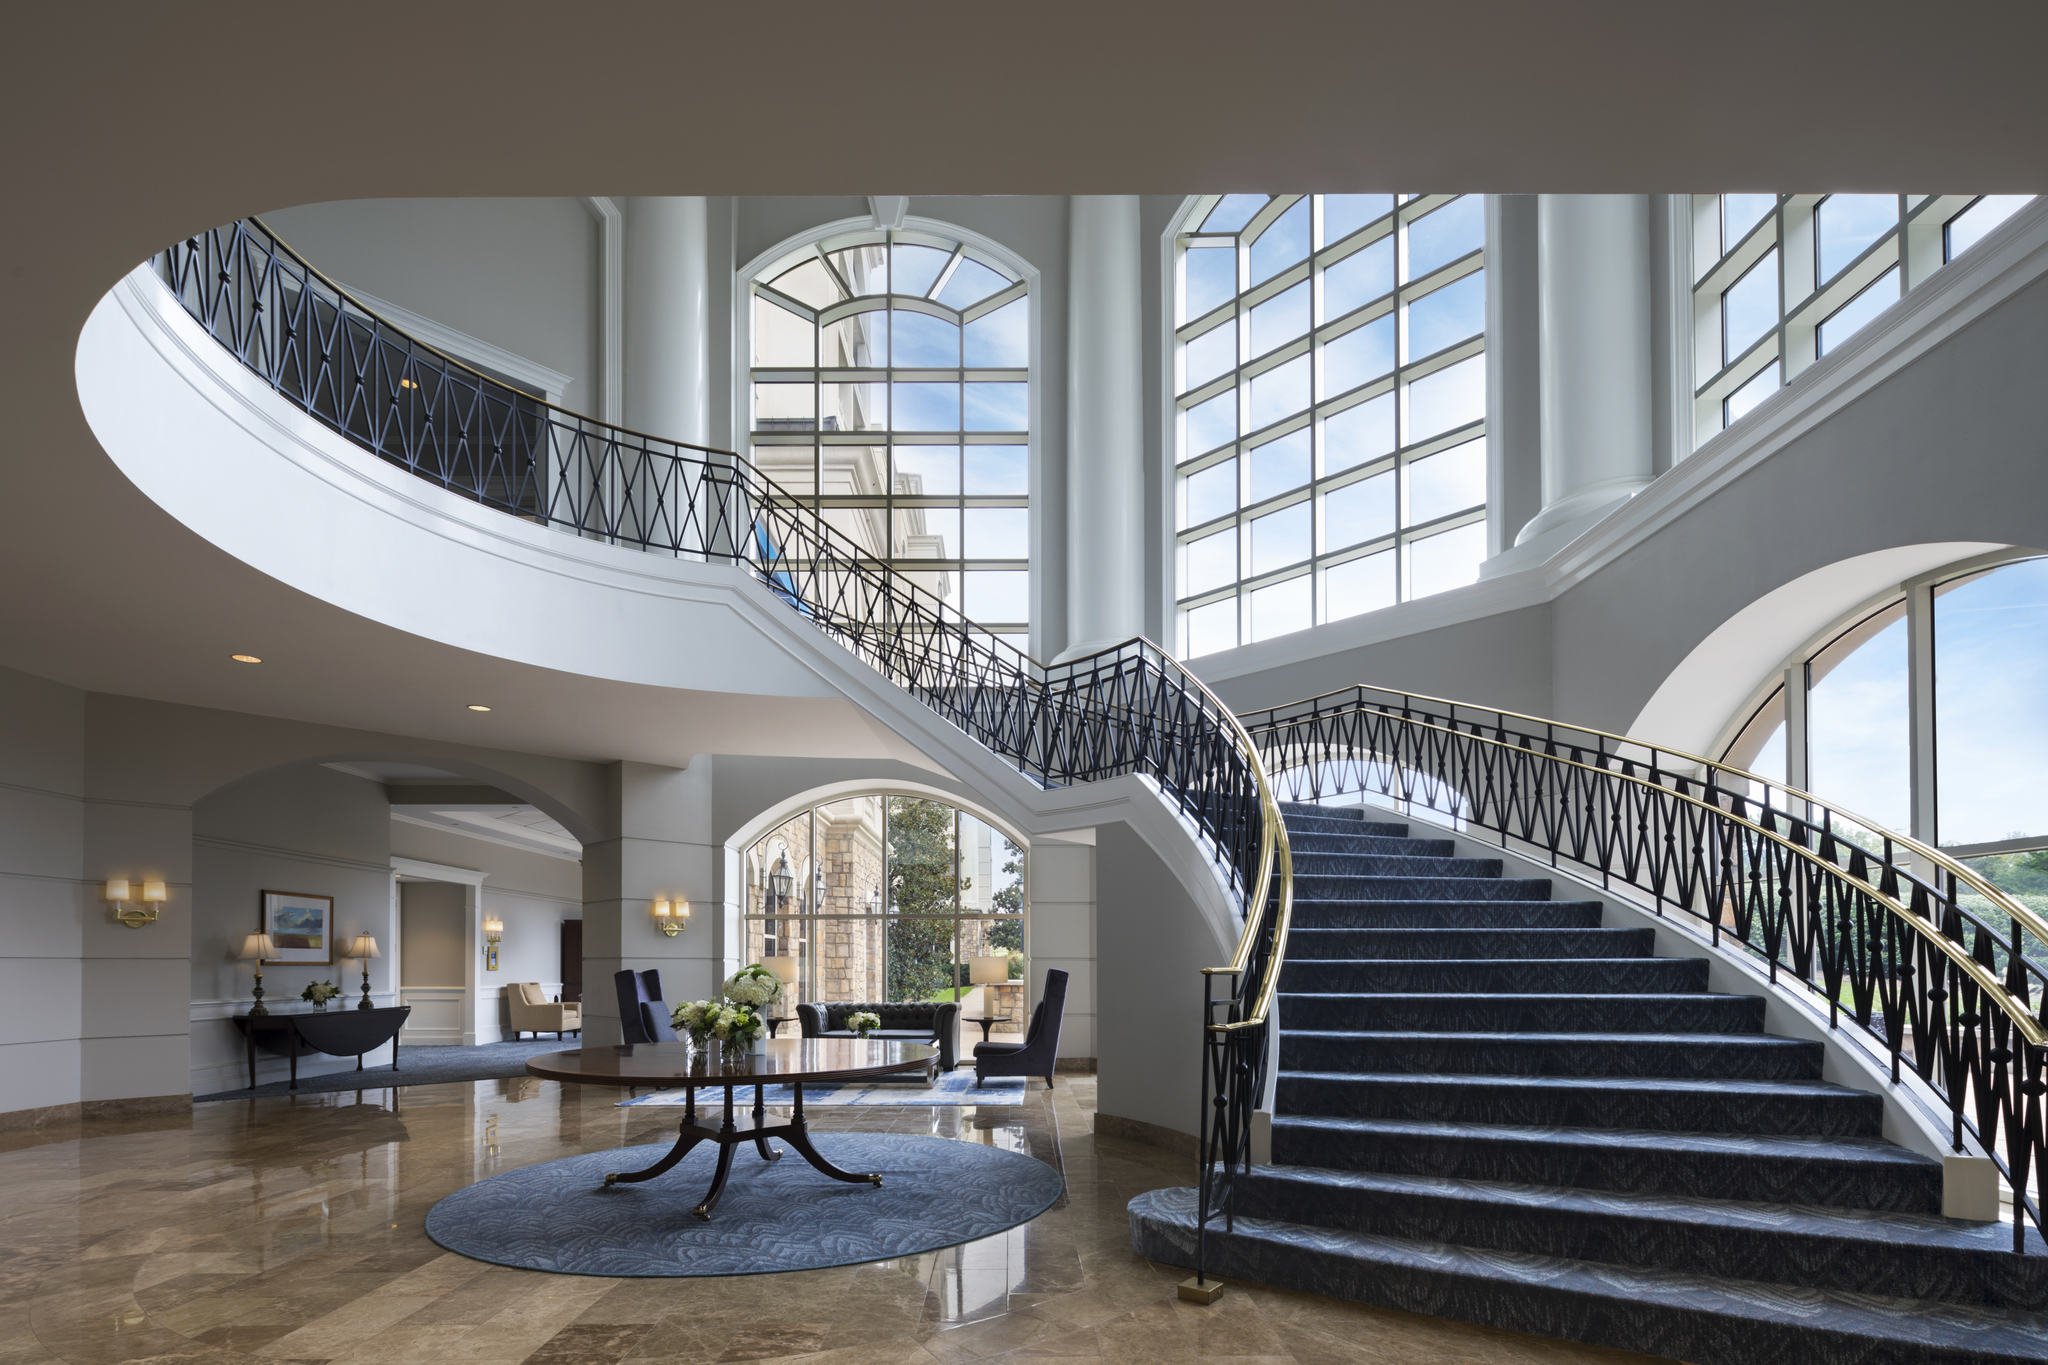 Renovated grand staircase at The Ballantyne Hotel